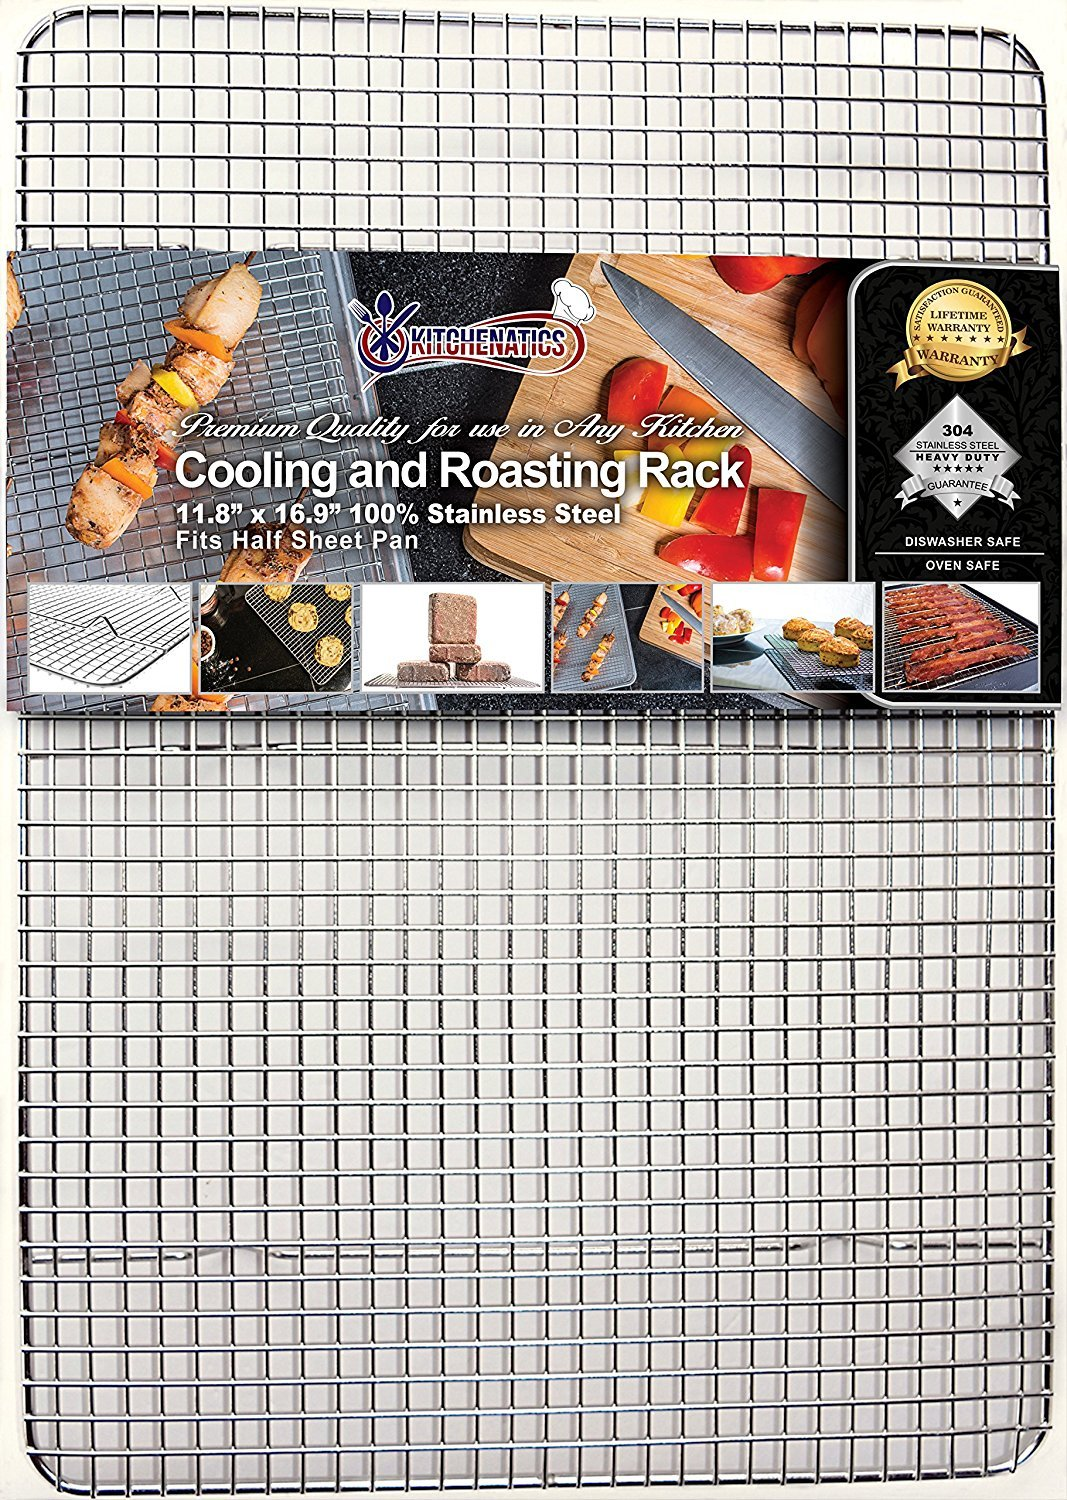 Kitchenatics Professional Grade Stainless Steel Cooling